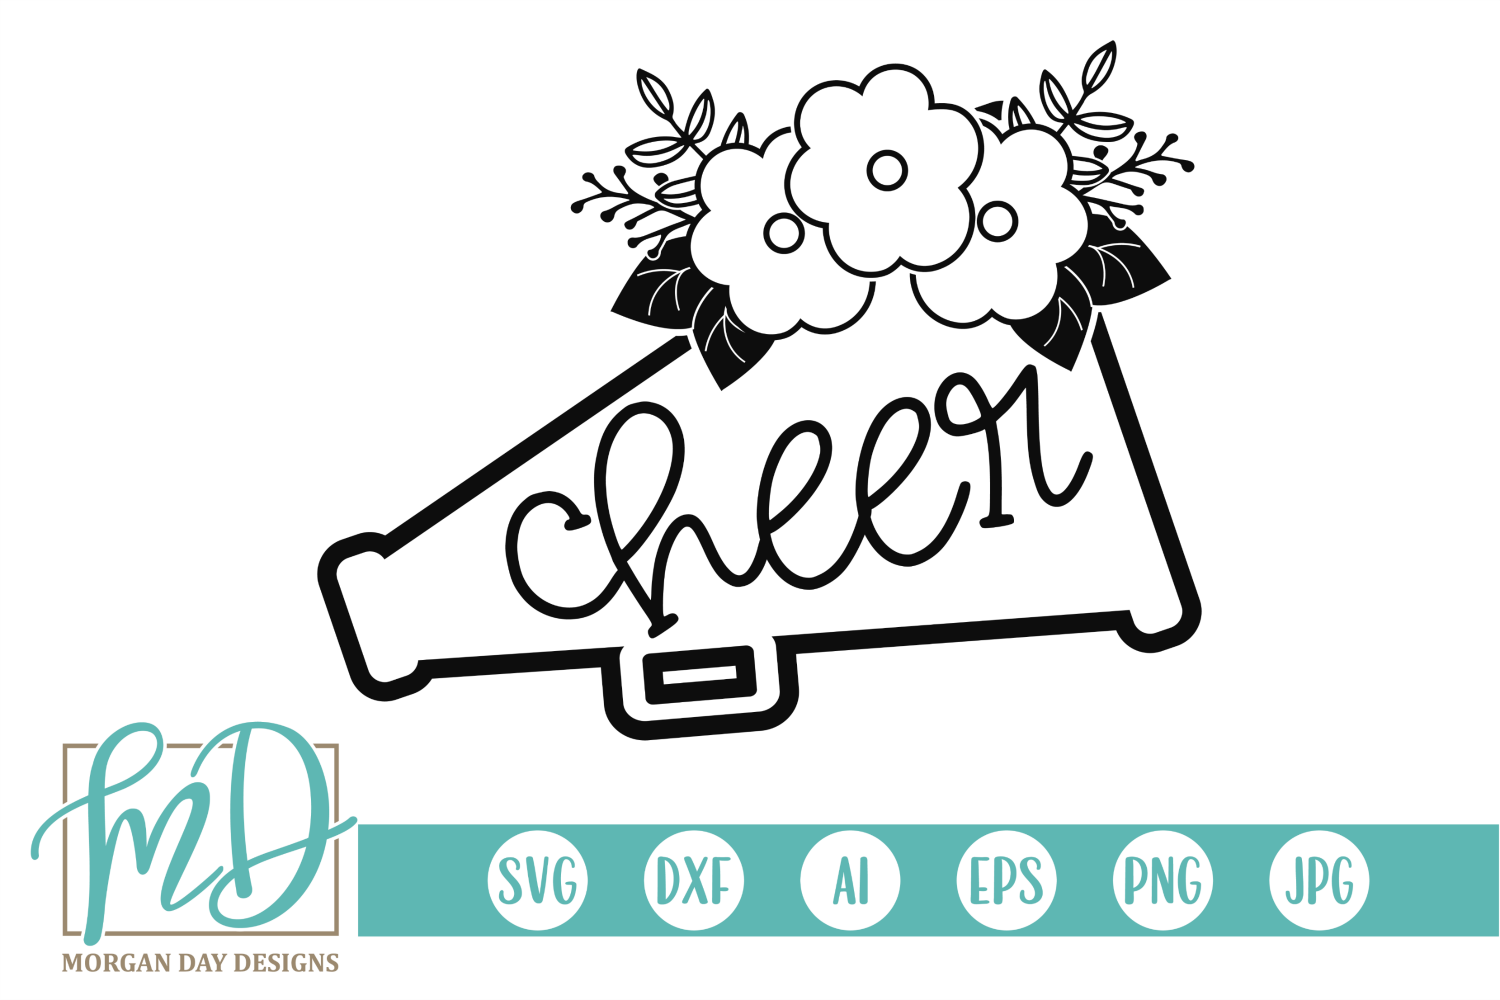 Download Free Cheer Graphic By Morgan Day Designs Creative Fabrica for Cricut Explore, Silhouette and other cutting machines.